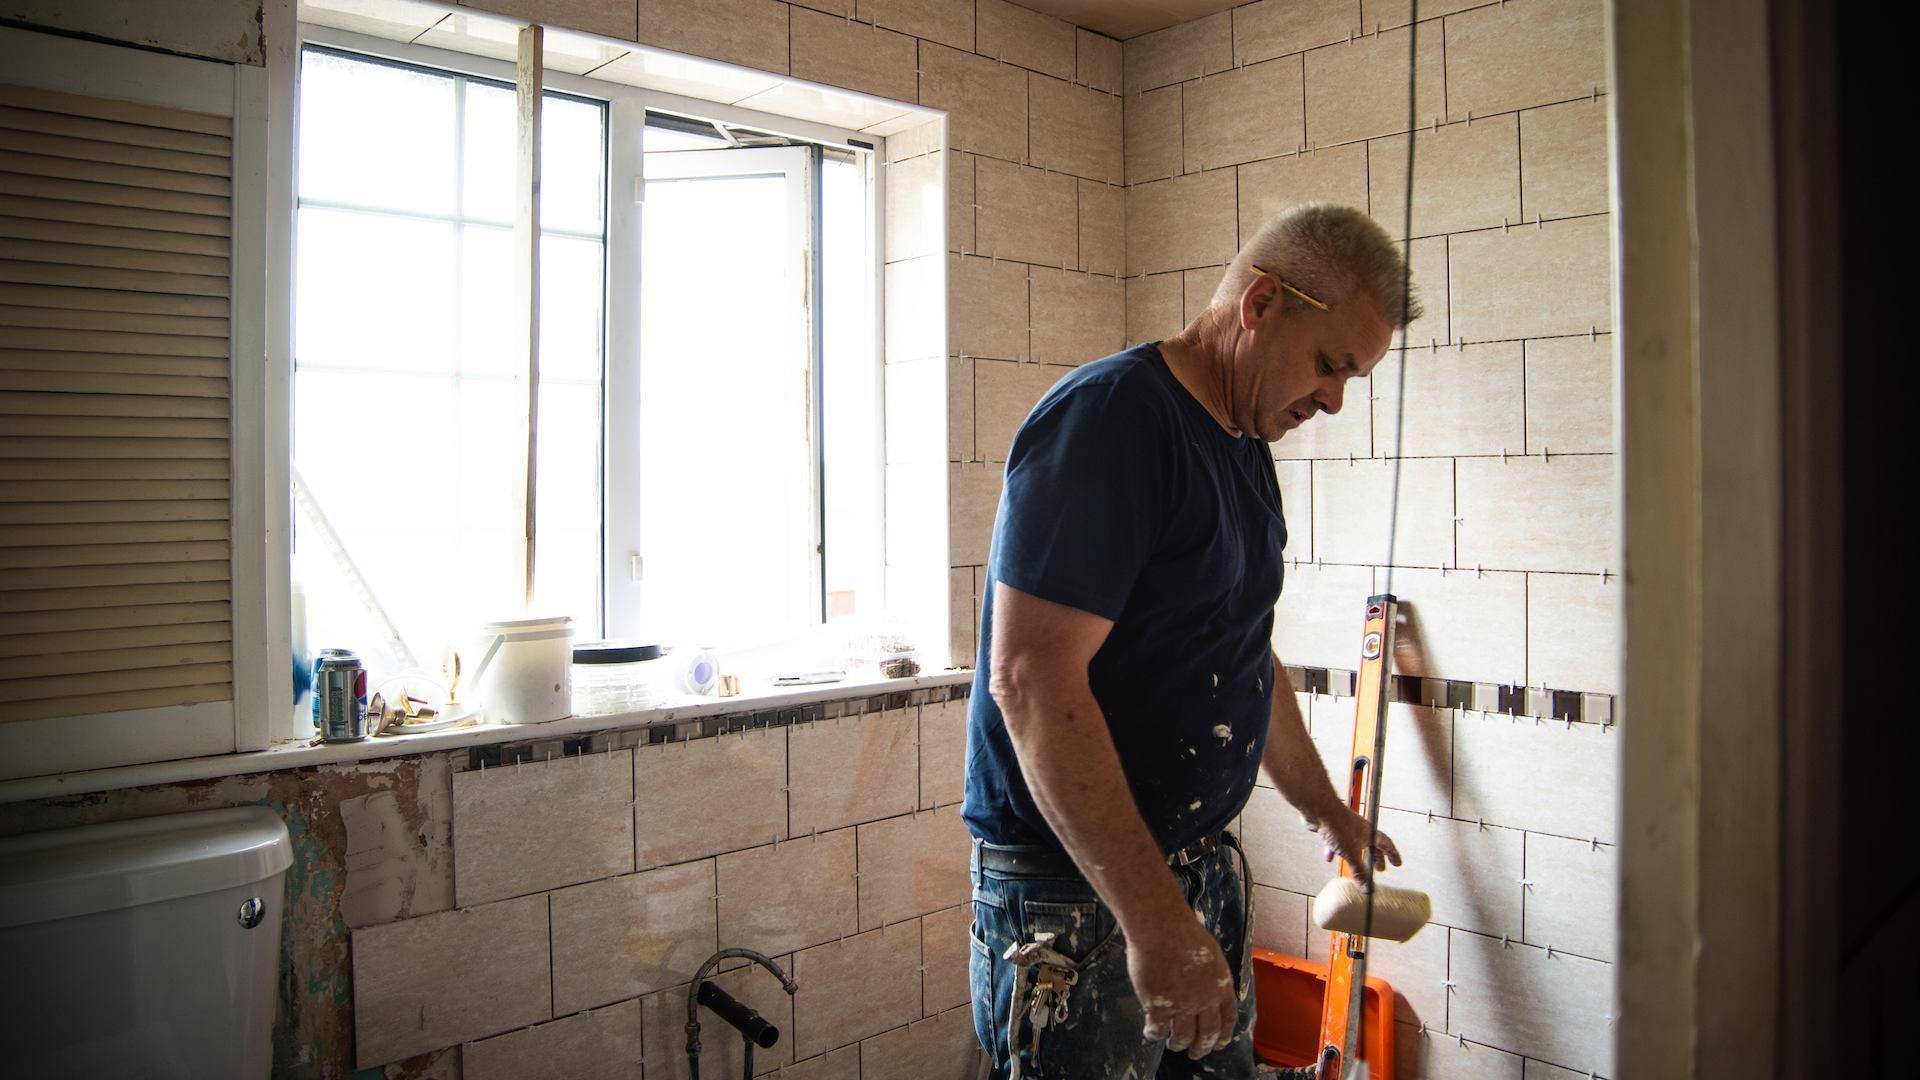 Worker making adaptations to a bathroom.